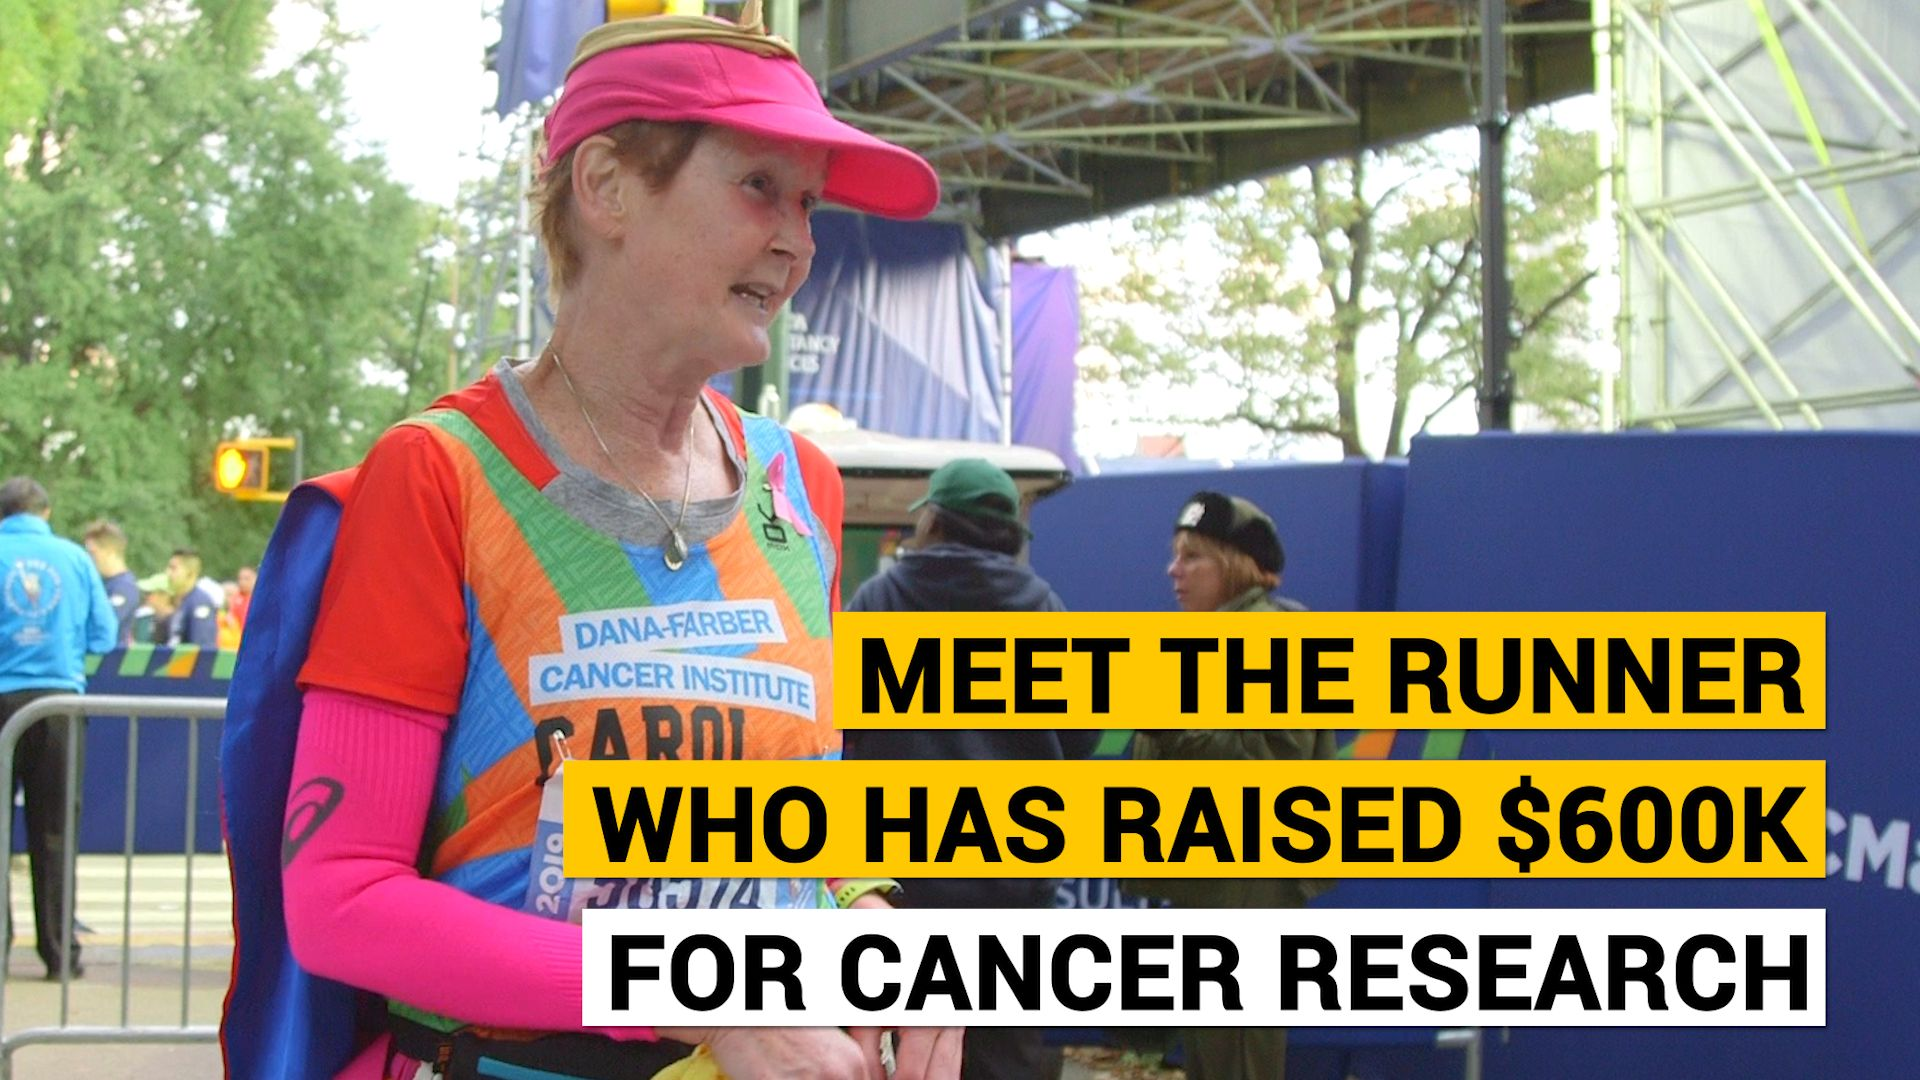 Cancer Is a Constant, But So Too Is Running